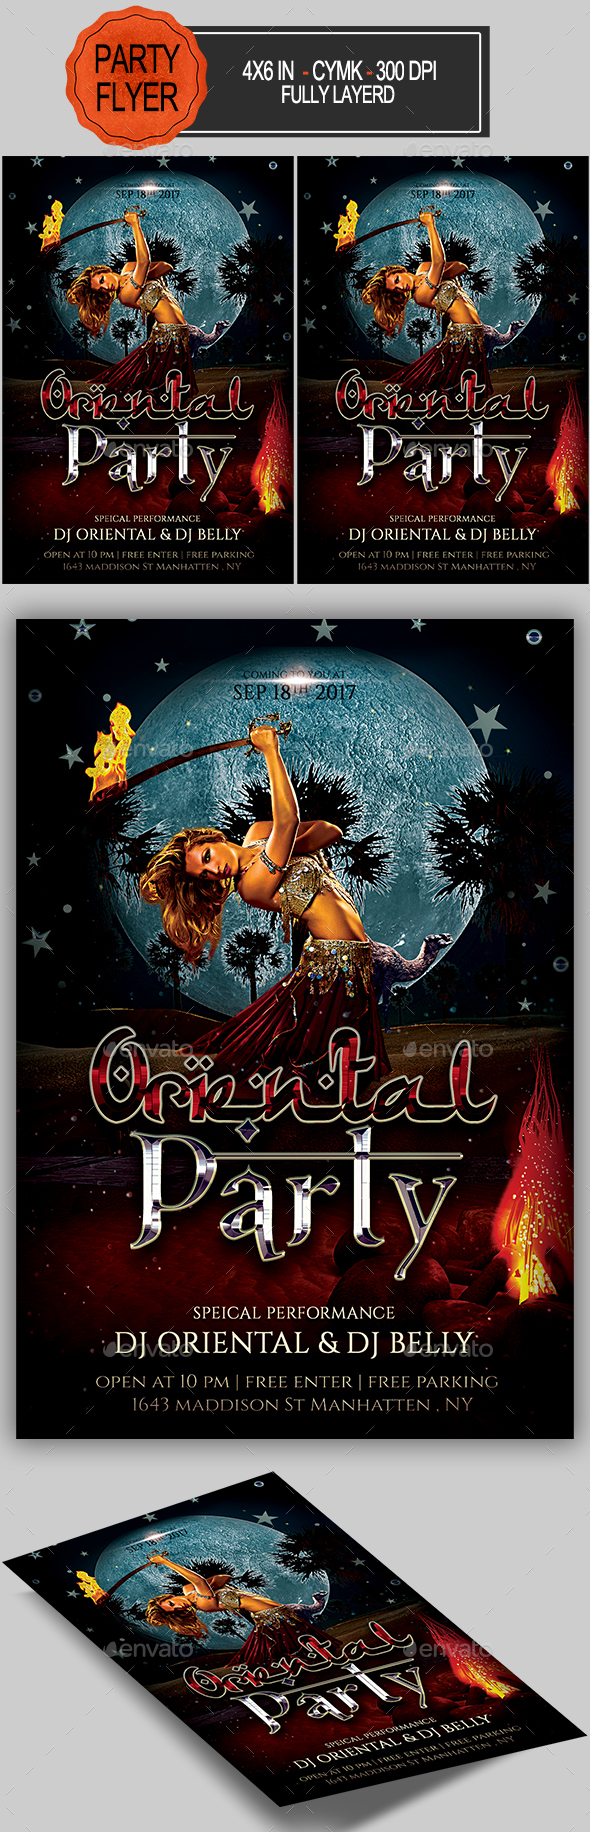 Oriental Party Flyer - Clubs & Parties Events